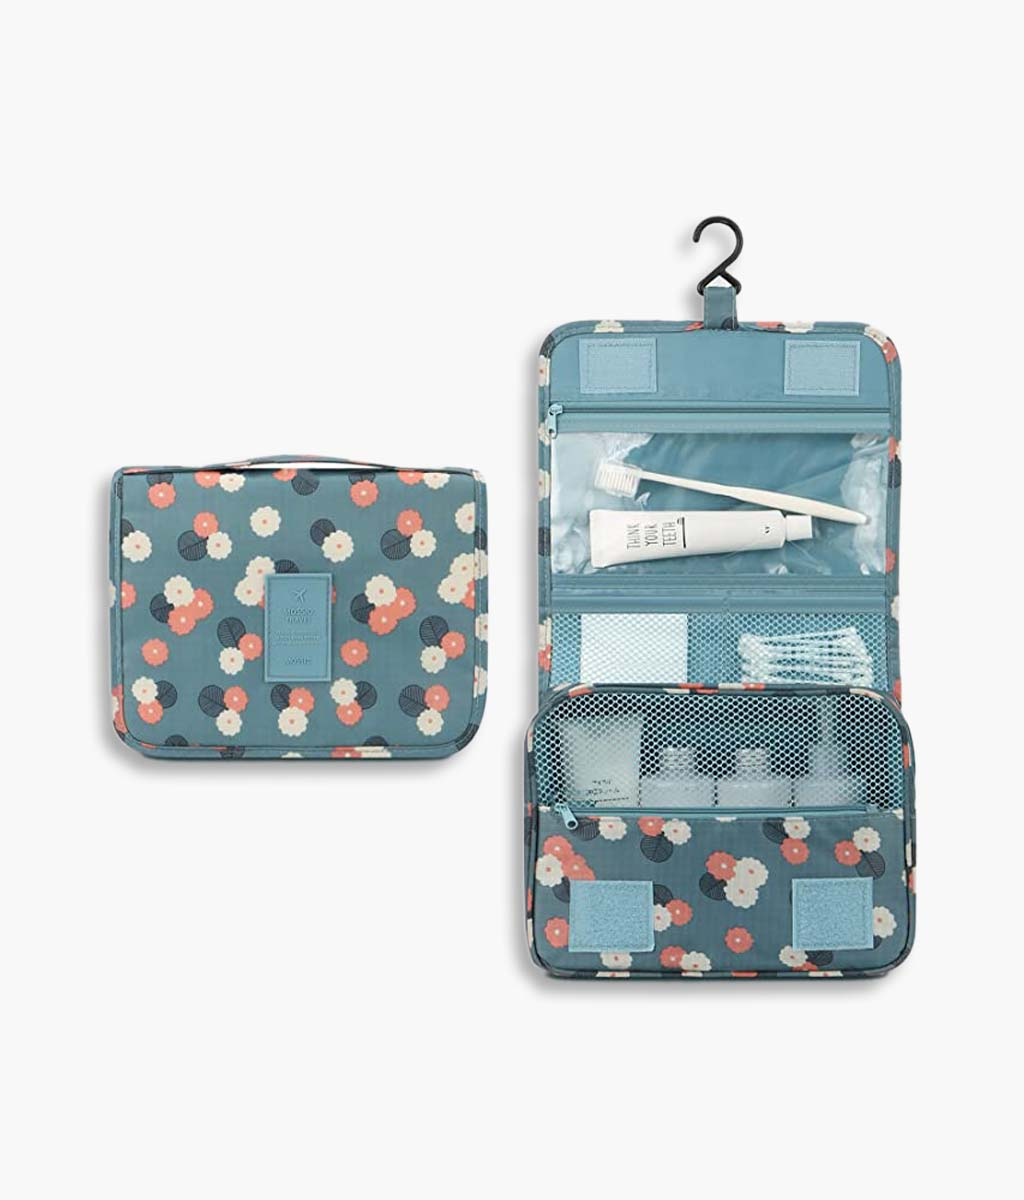 Hanging Toiletry Bag Cosmetic Makeup Travel Organizer